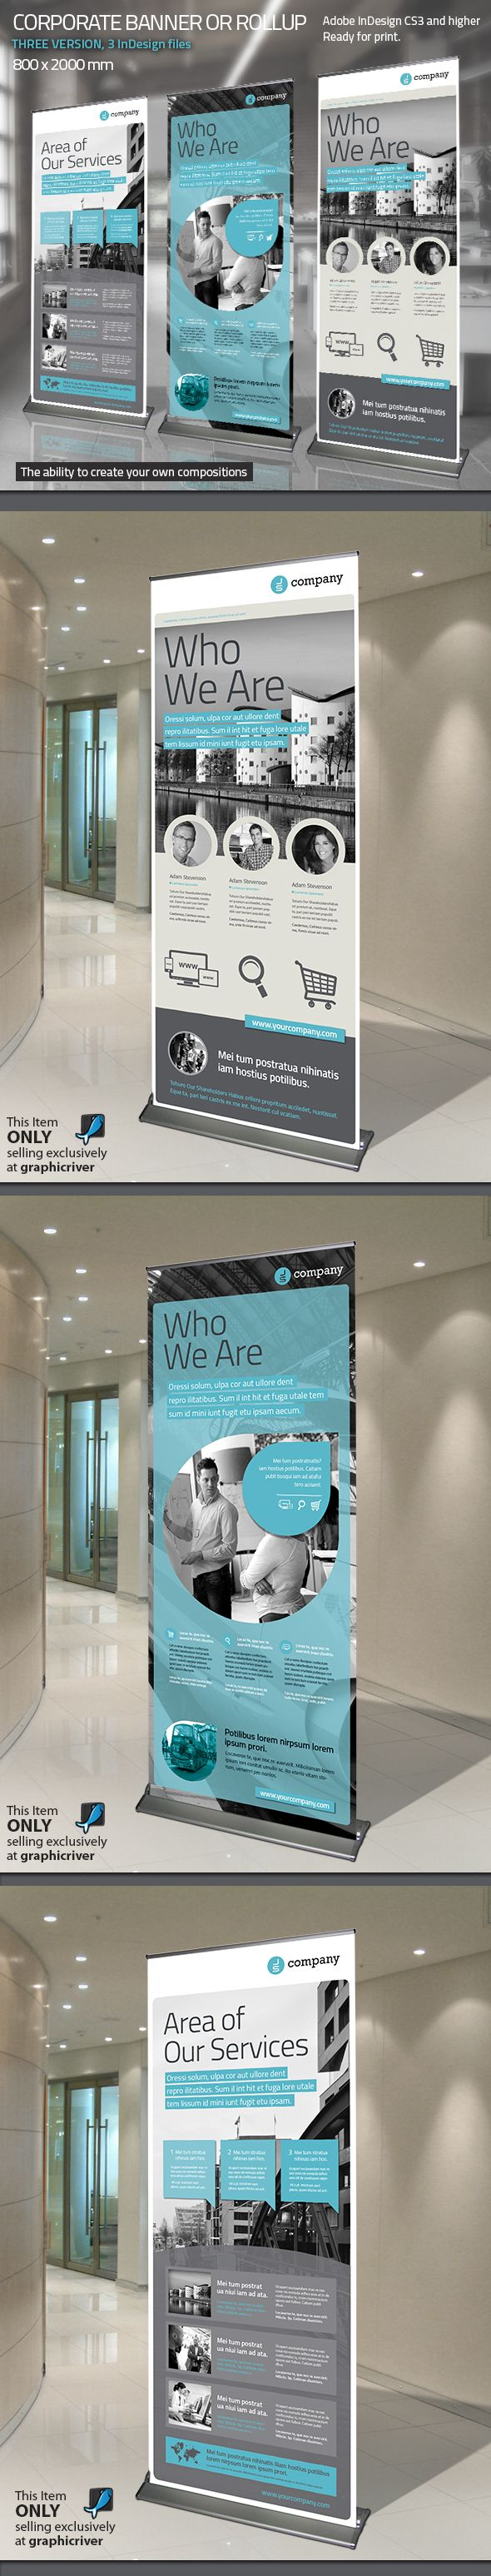 Corporate Banner or Rollup Vol. 8 on Behance